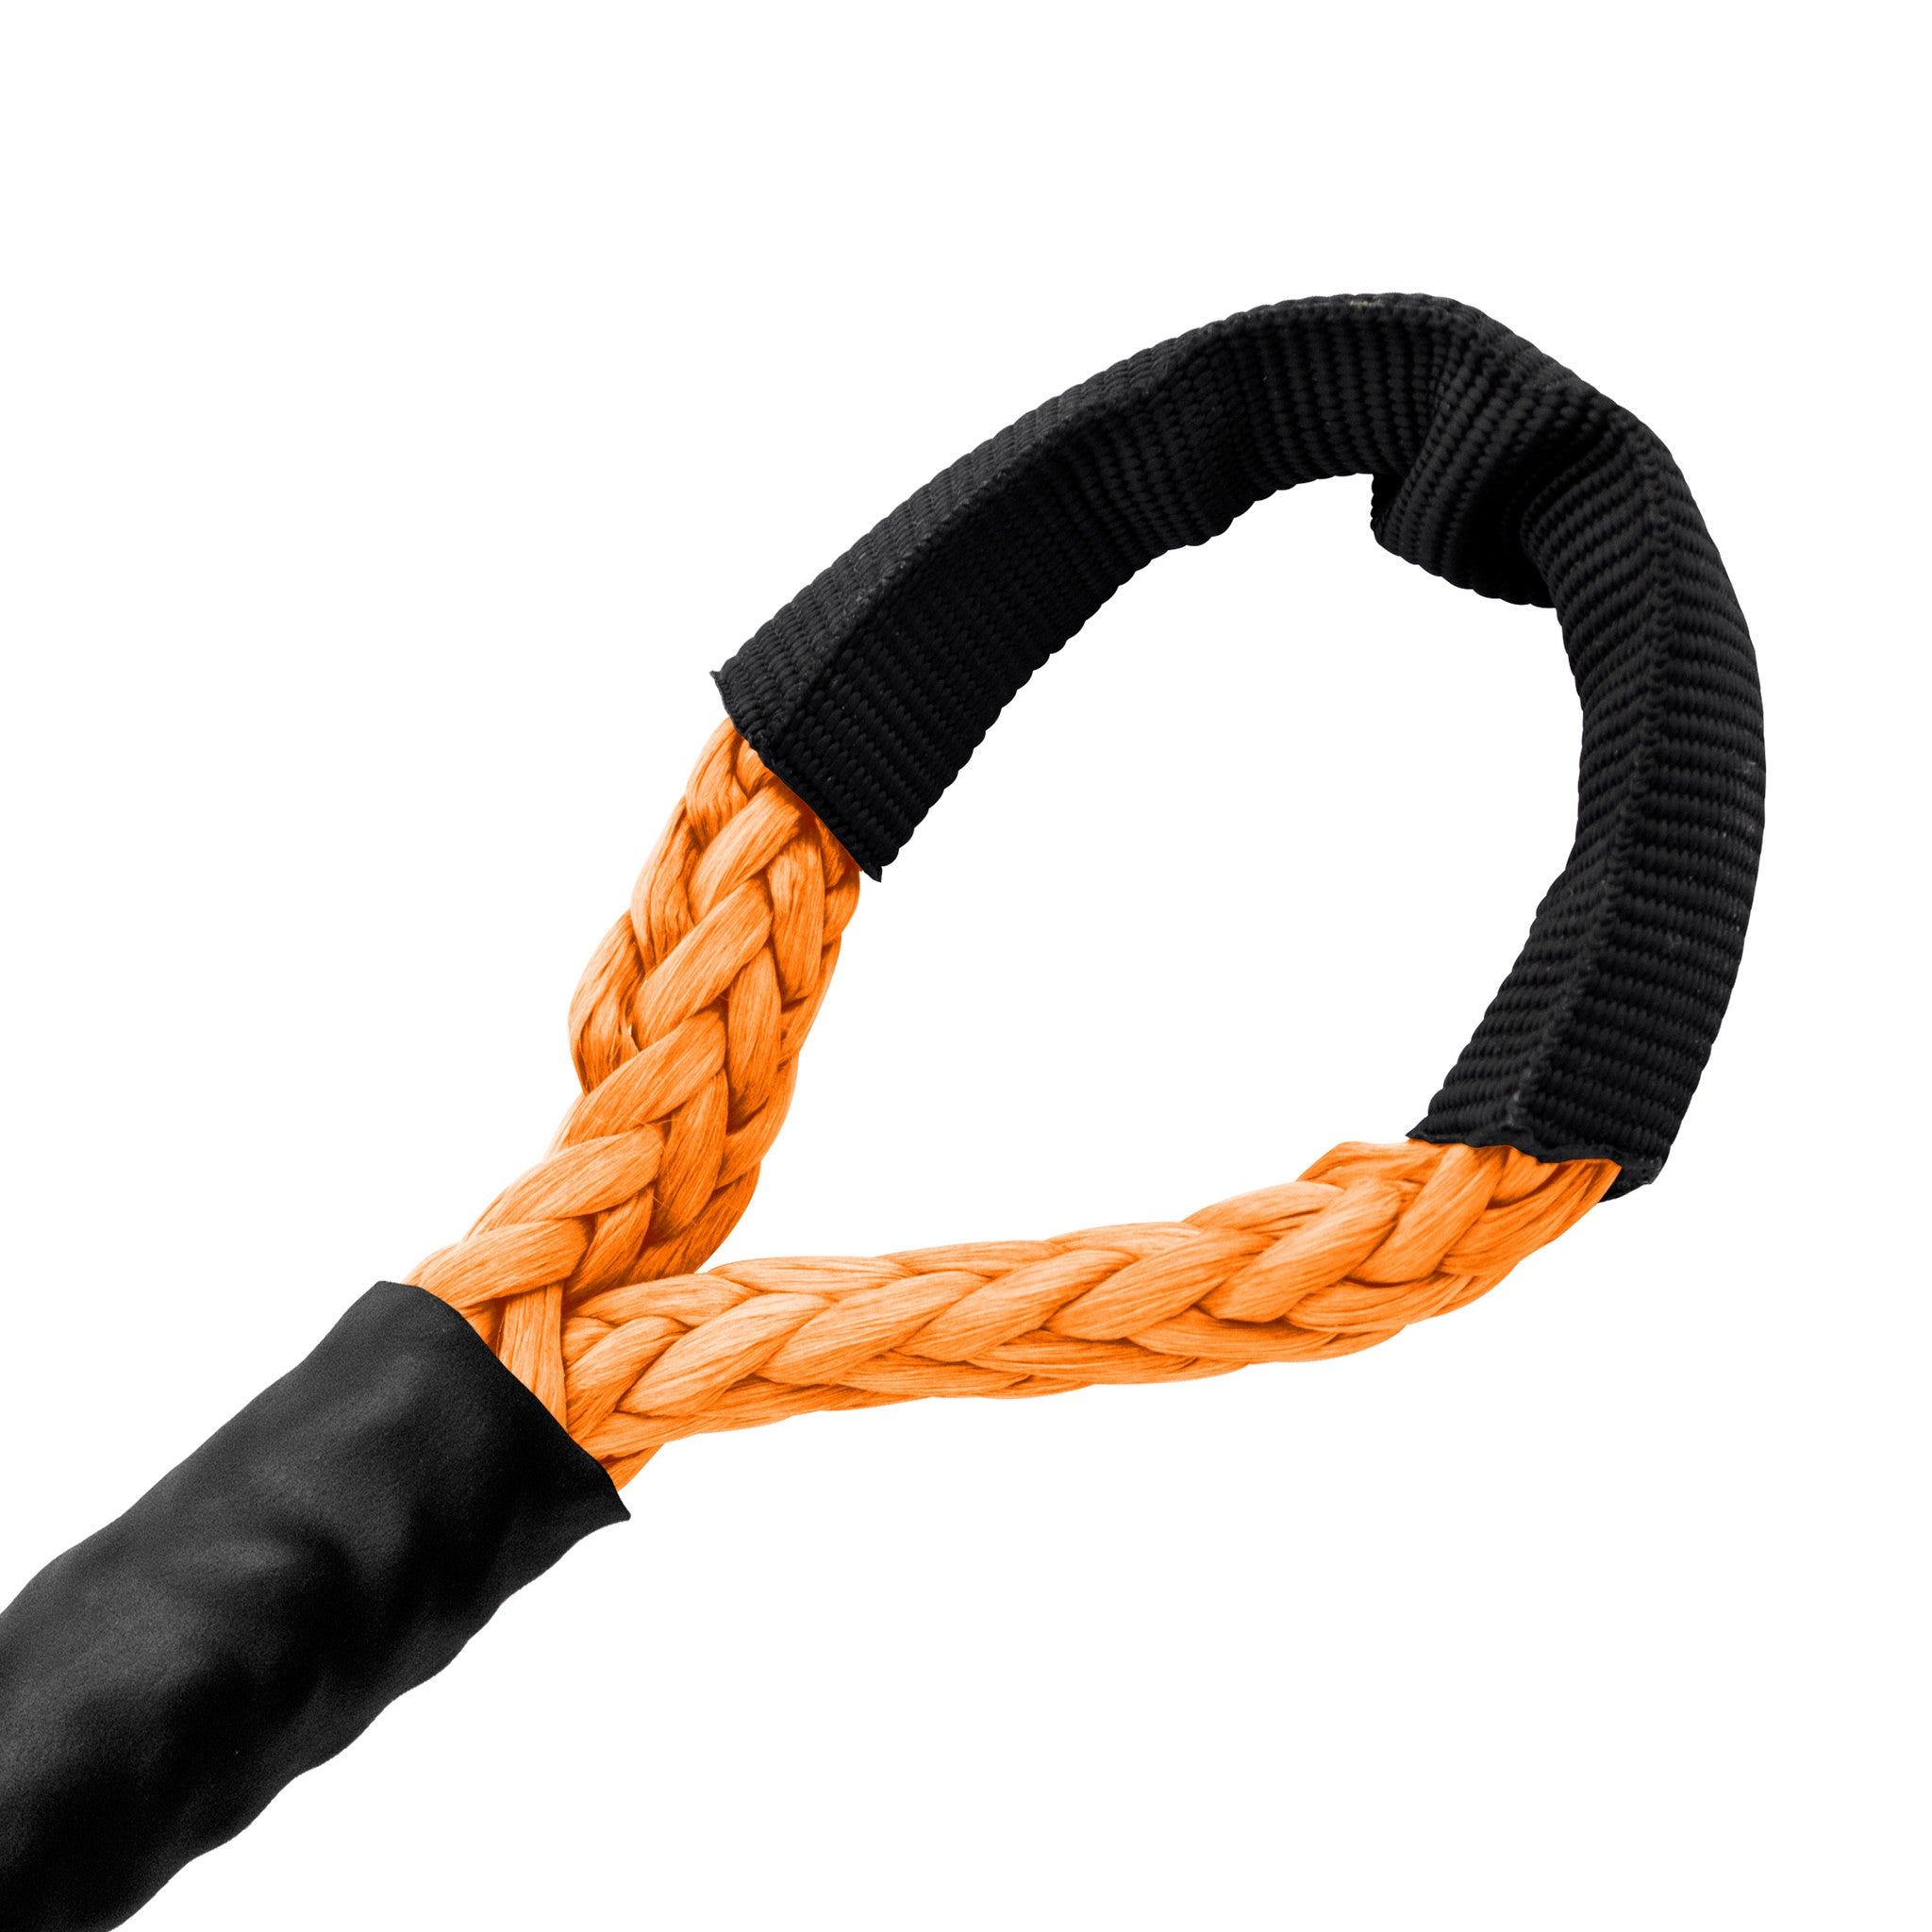 "5/16"" Diamond Line Winch Rope Mainline - Orange Soft Eye."